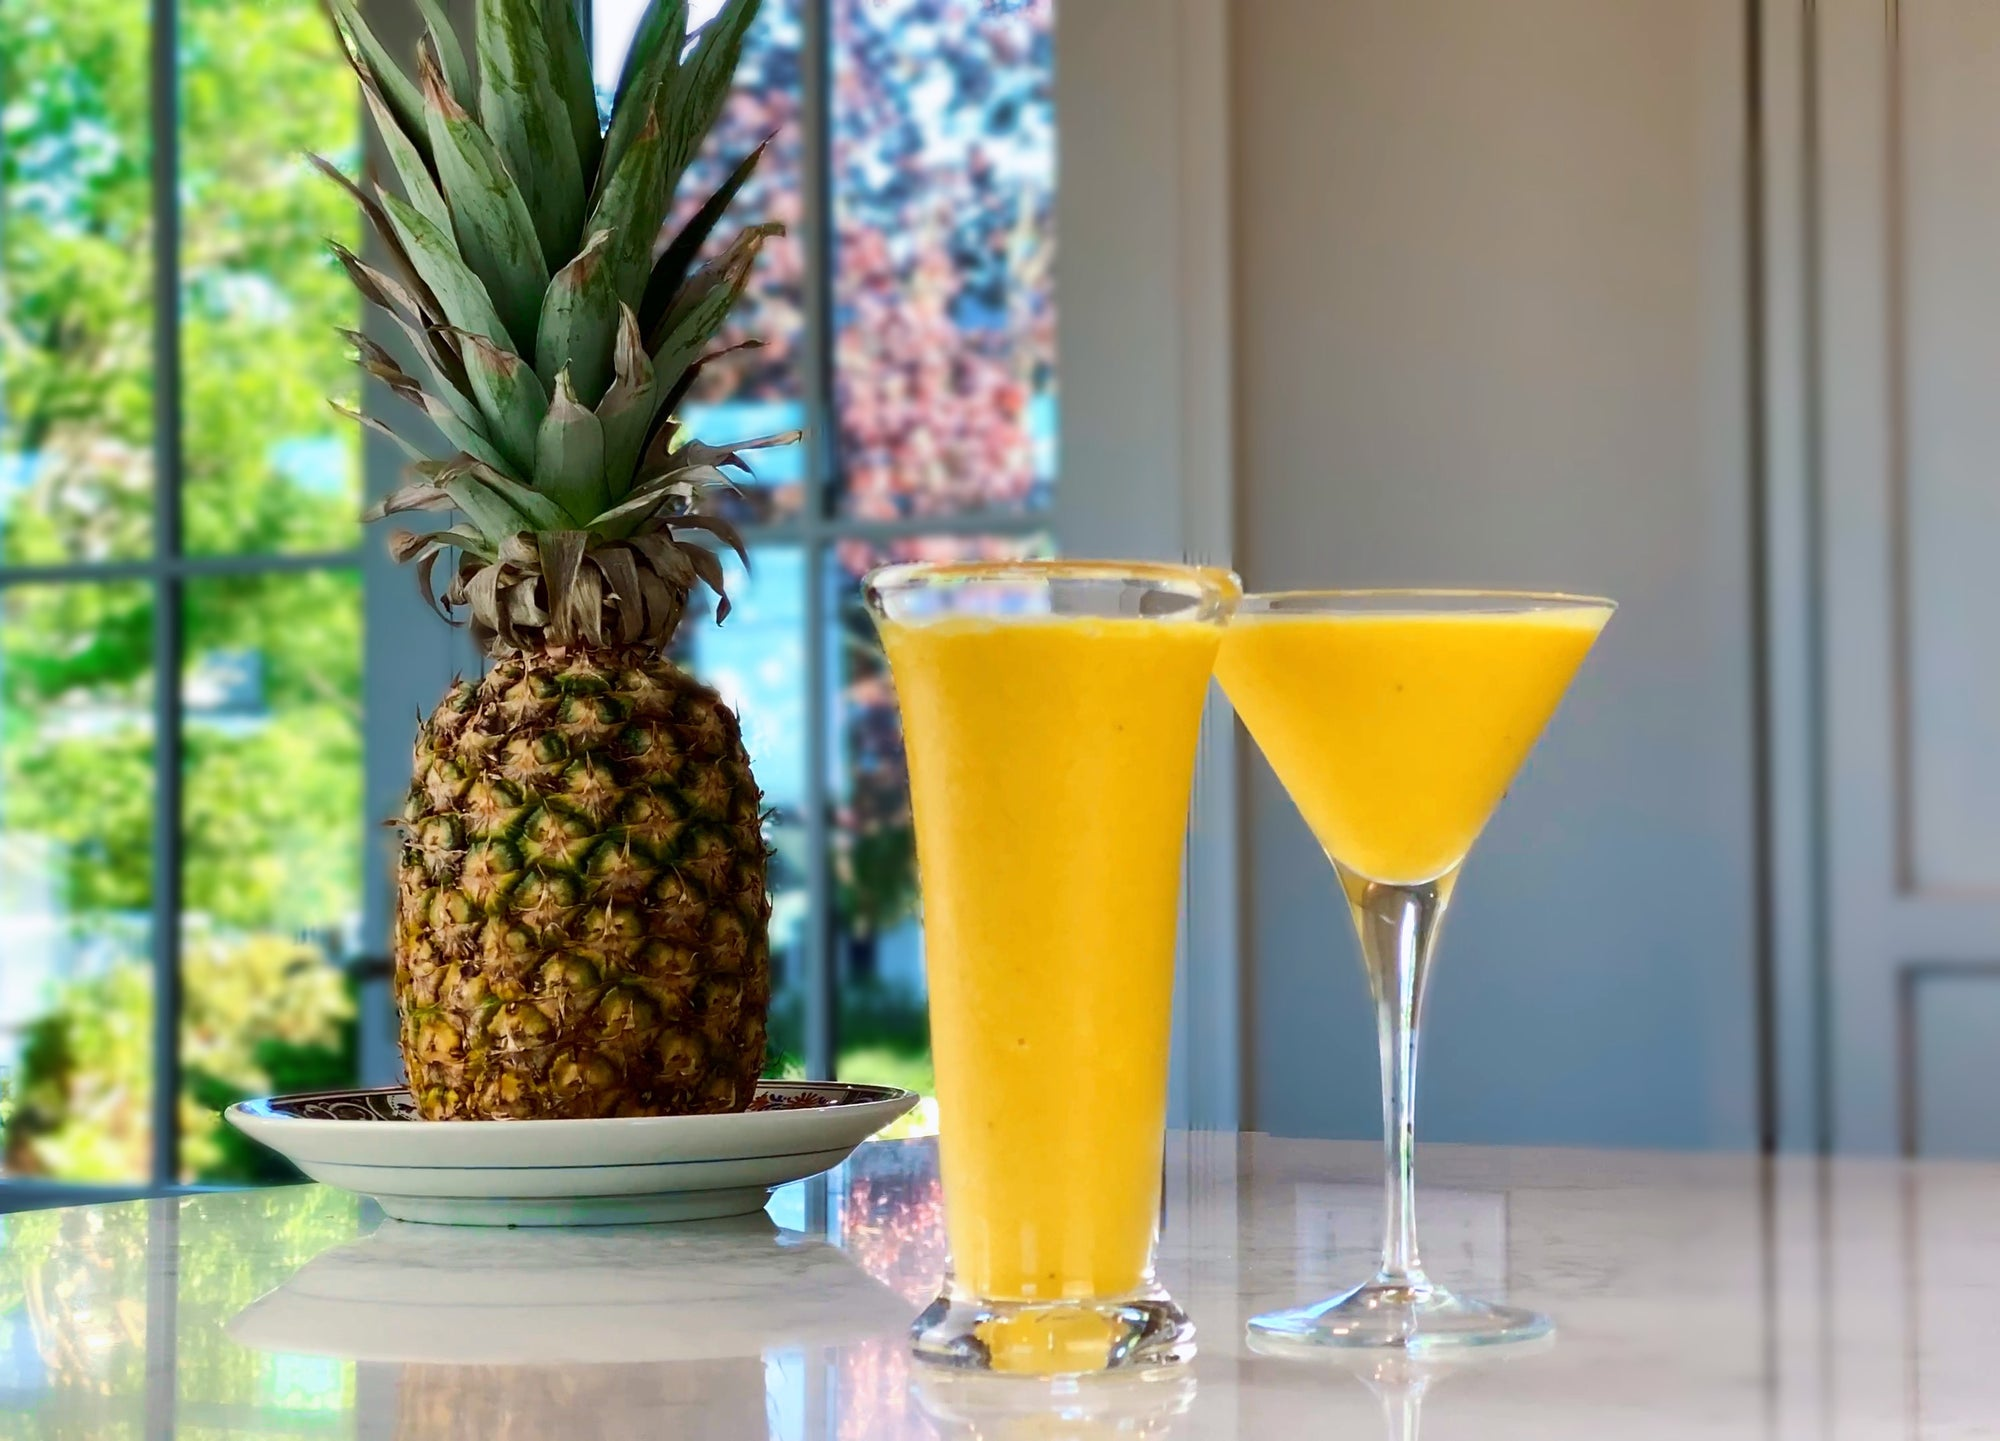 Pineapple, Ginger, and Turmeric Smoothie